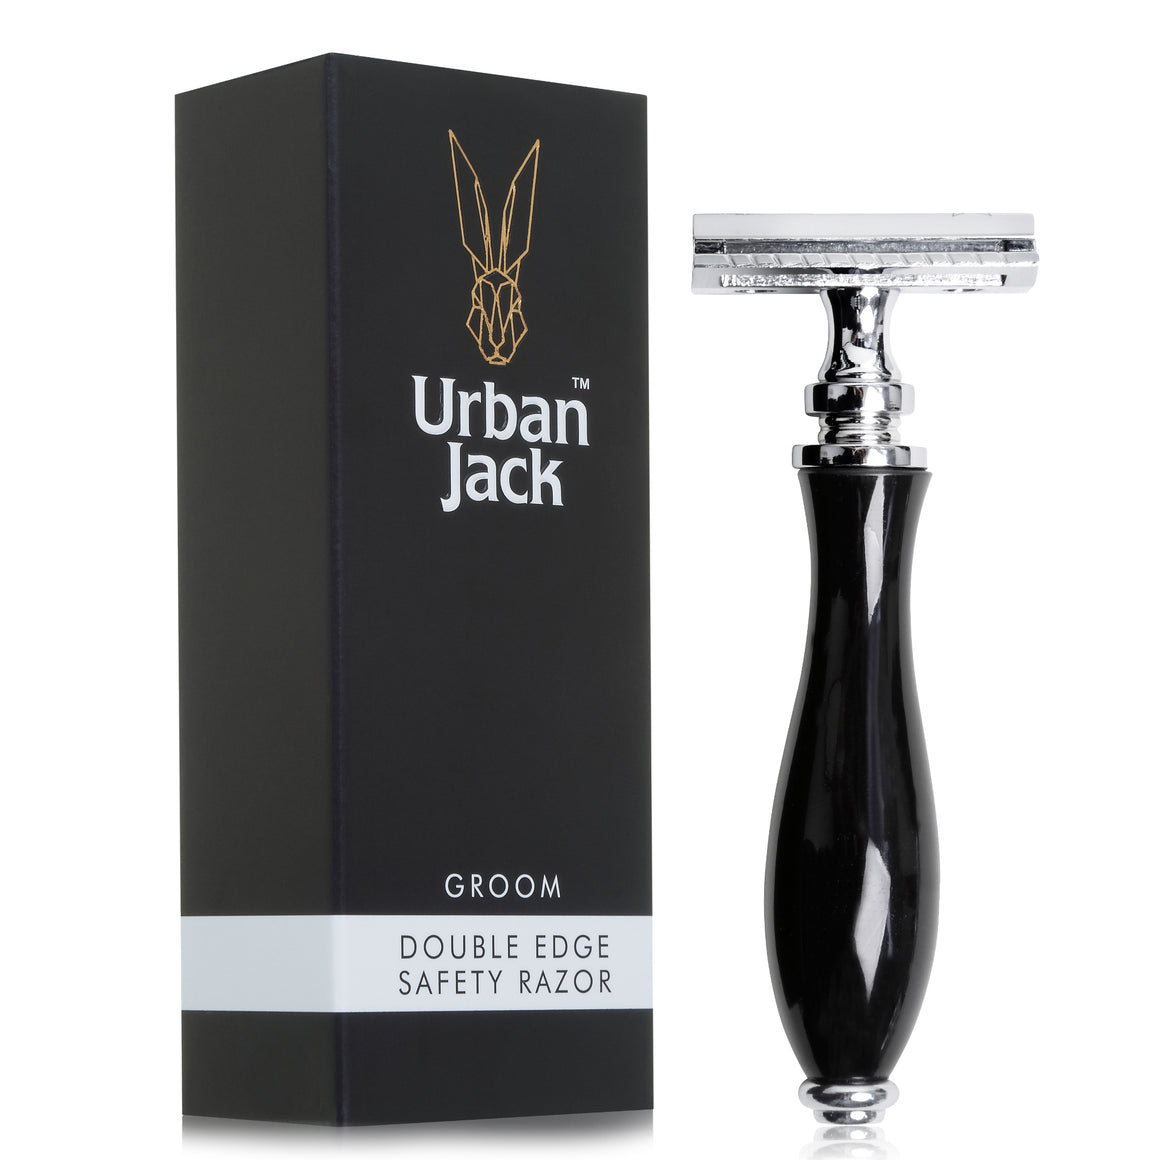 Urban Jack Groom Double Edged Safety Razor with Box